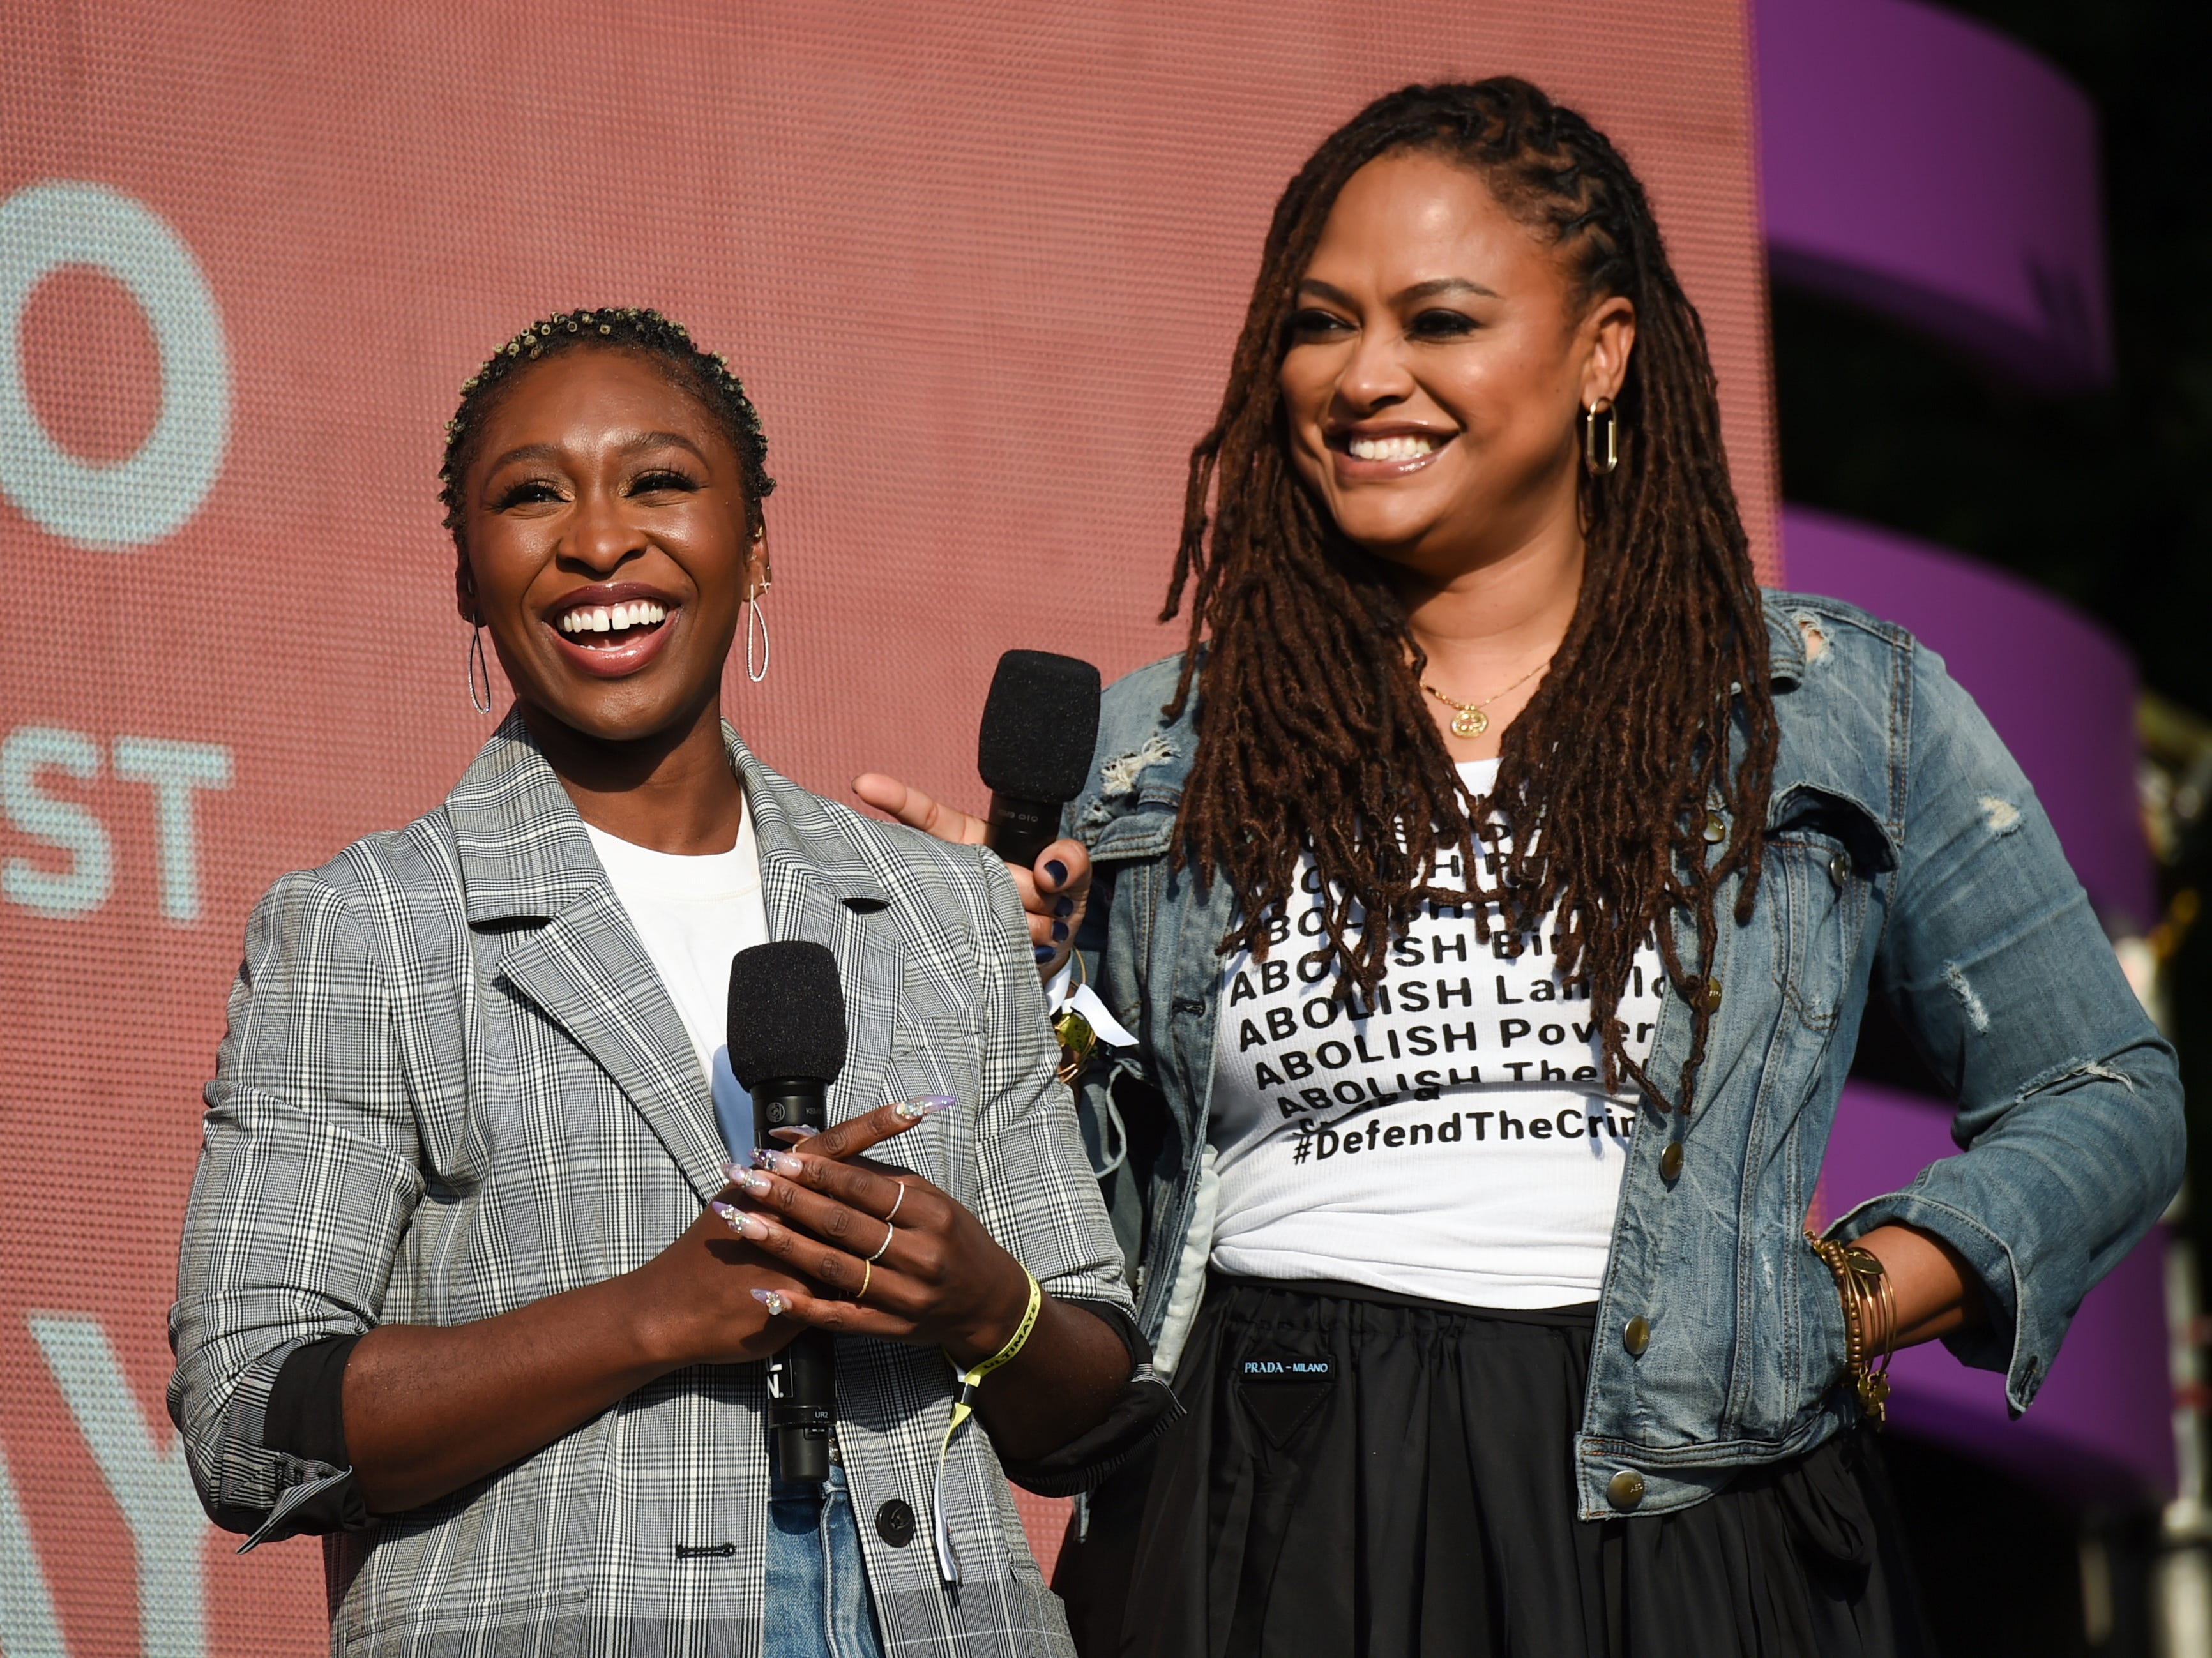 Singer Cynthia Erivo, left, and director Ava DuVernay address the crowd at the 2018 Global Citizen Festival in Central Park on Saturday, Sept. 29, 2018, in New York. (Photo by Evan Agostini/Invision/AP) ORG XMIT: NYEA0162